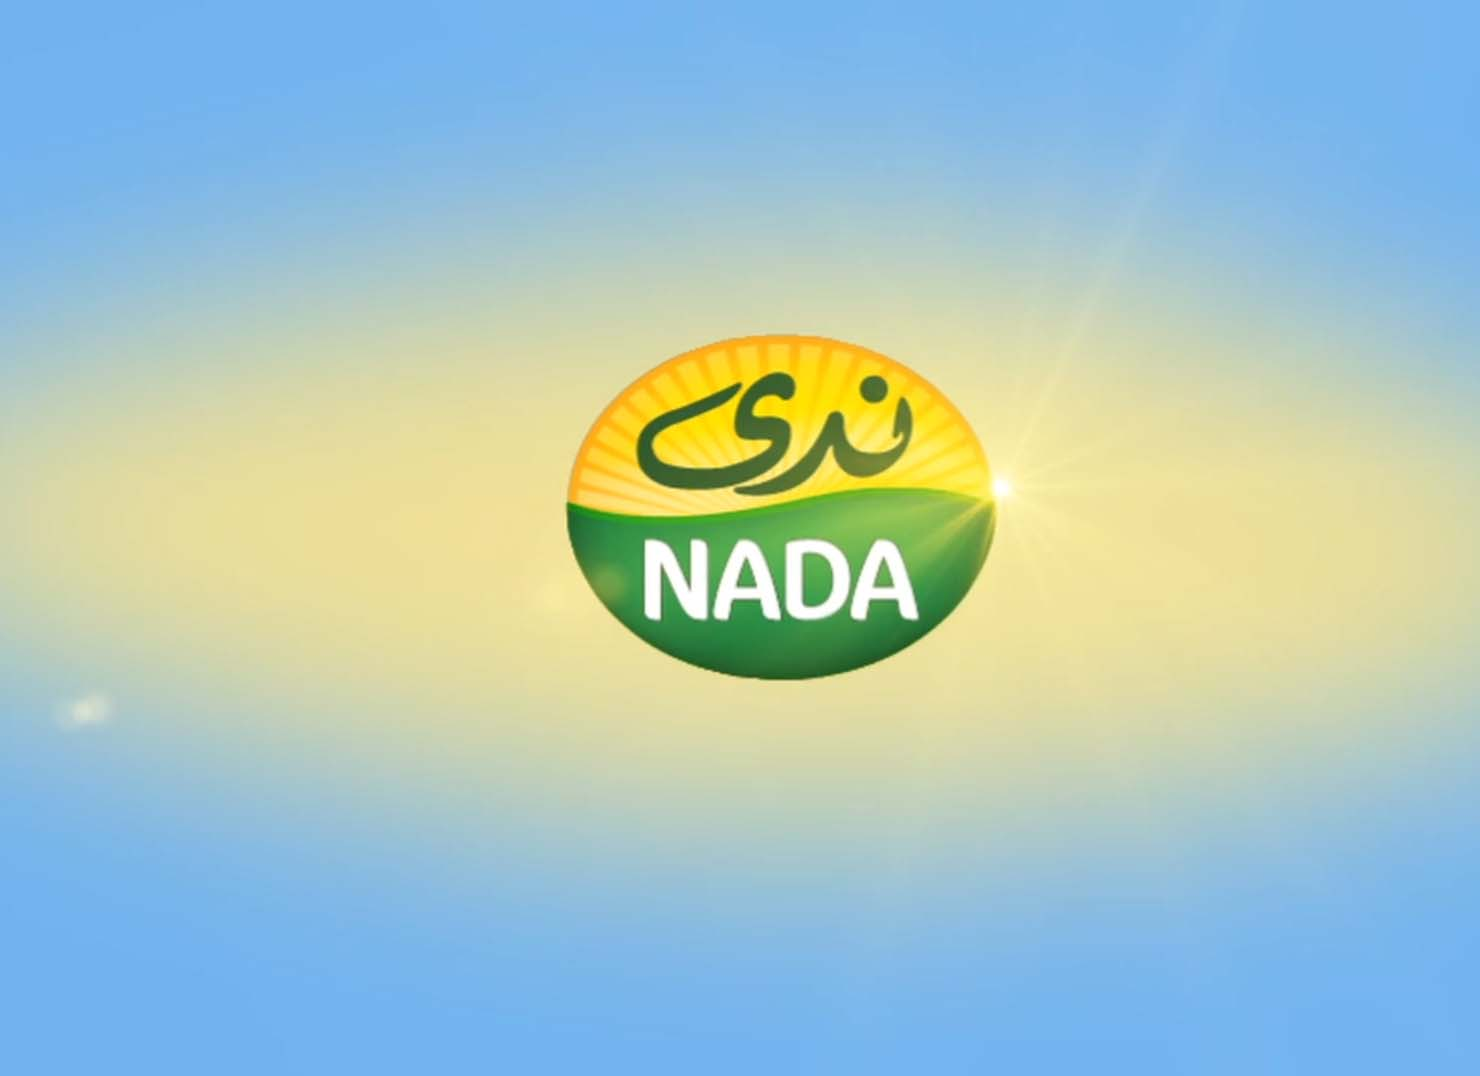 Nada logo animation by Edwin Silva